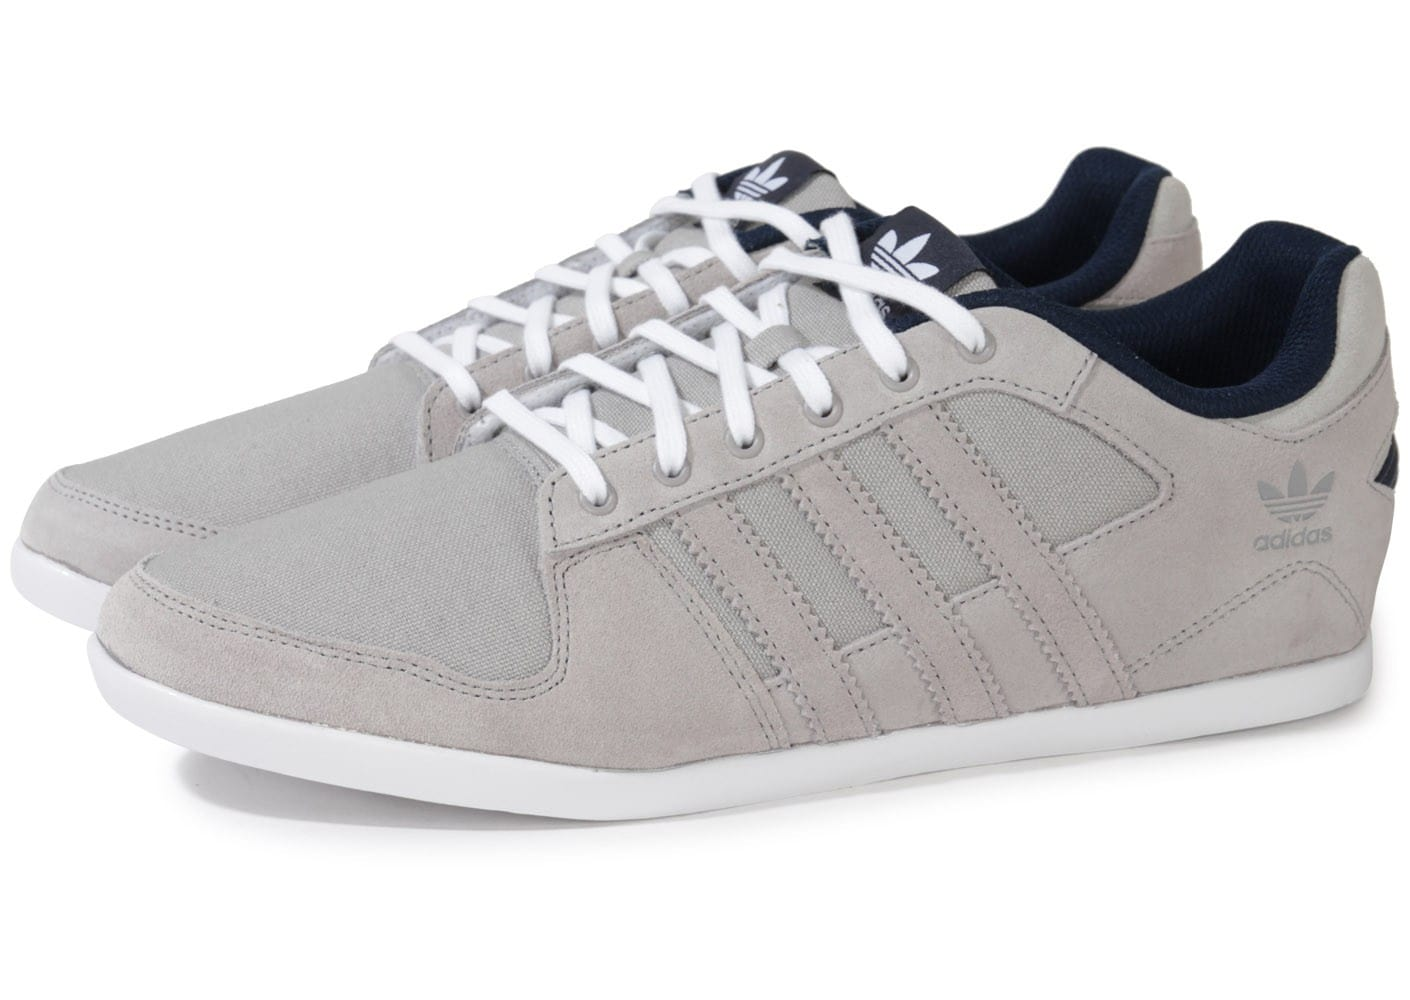 261ef50bd7 chaussure adidas plimcana low homme,Size 4041424344454647 Chaussures ...